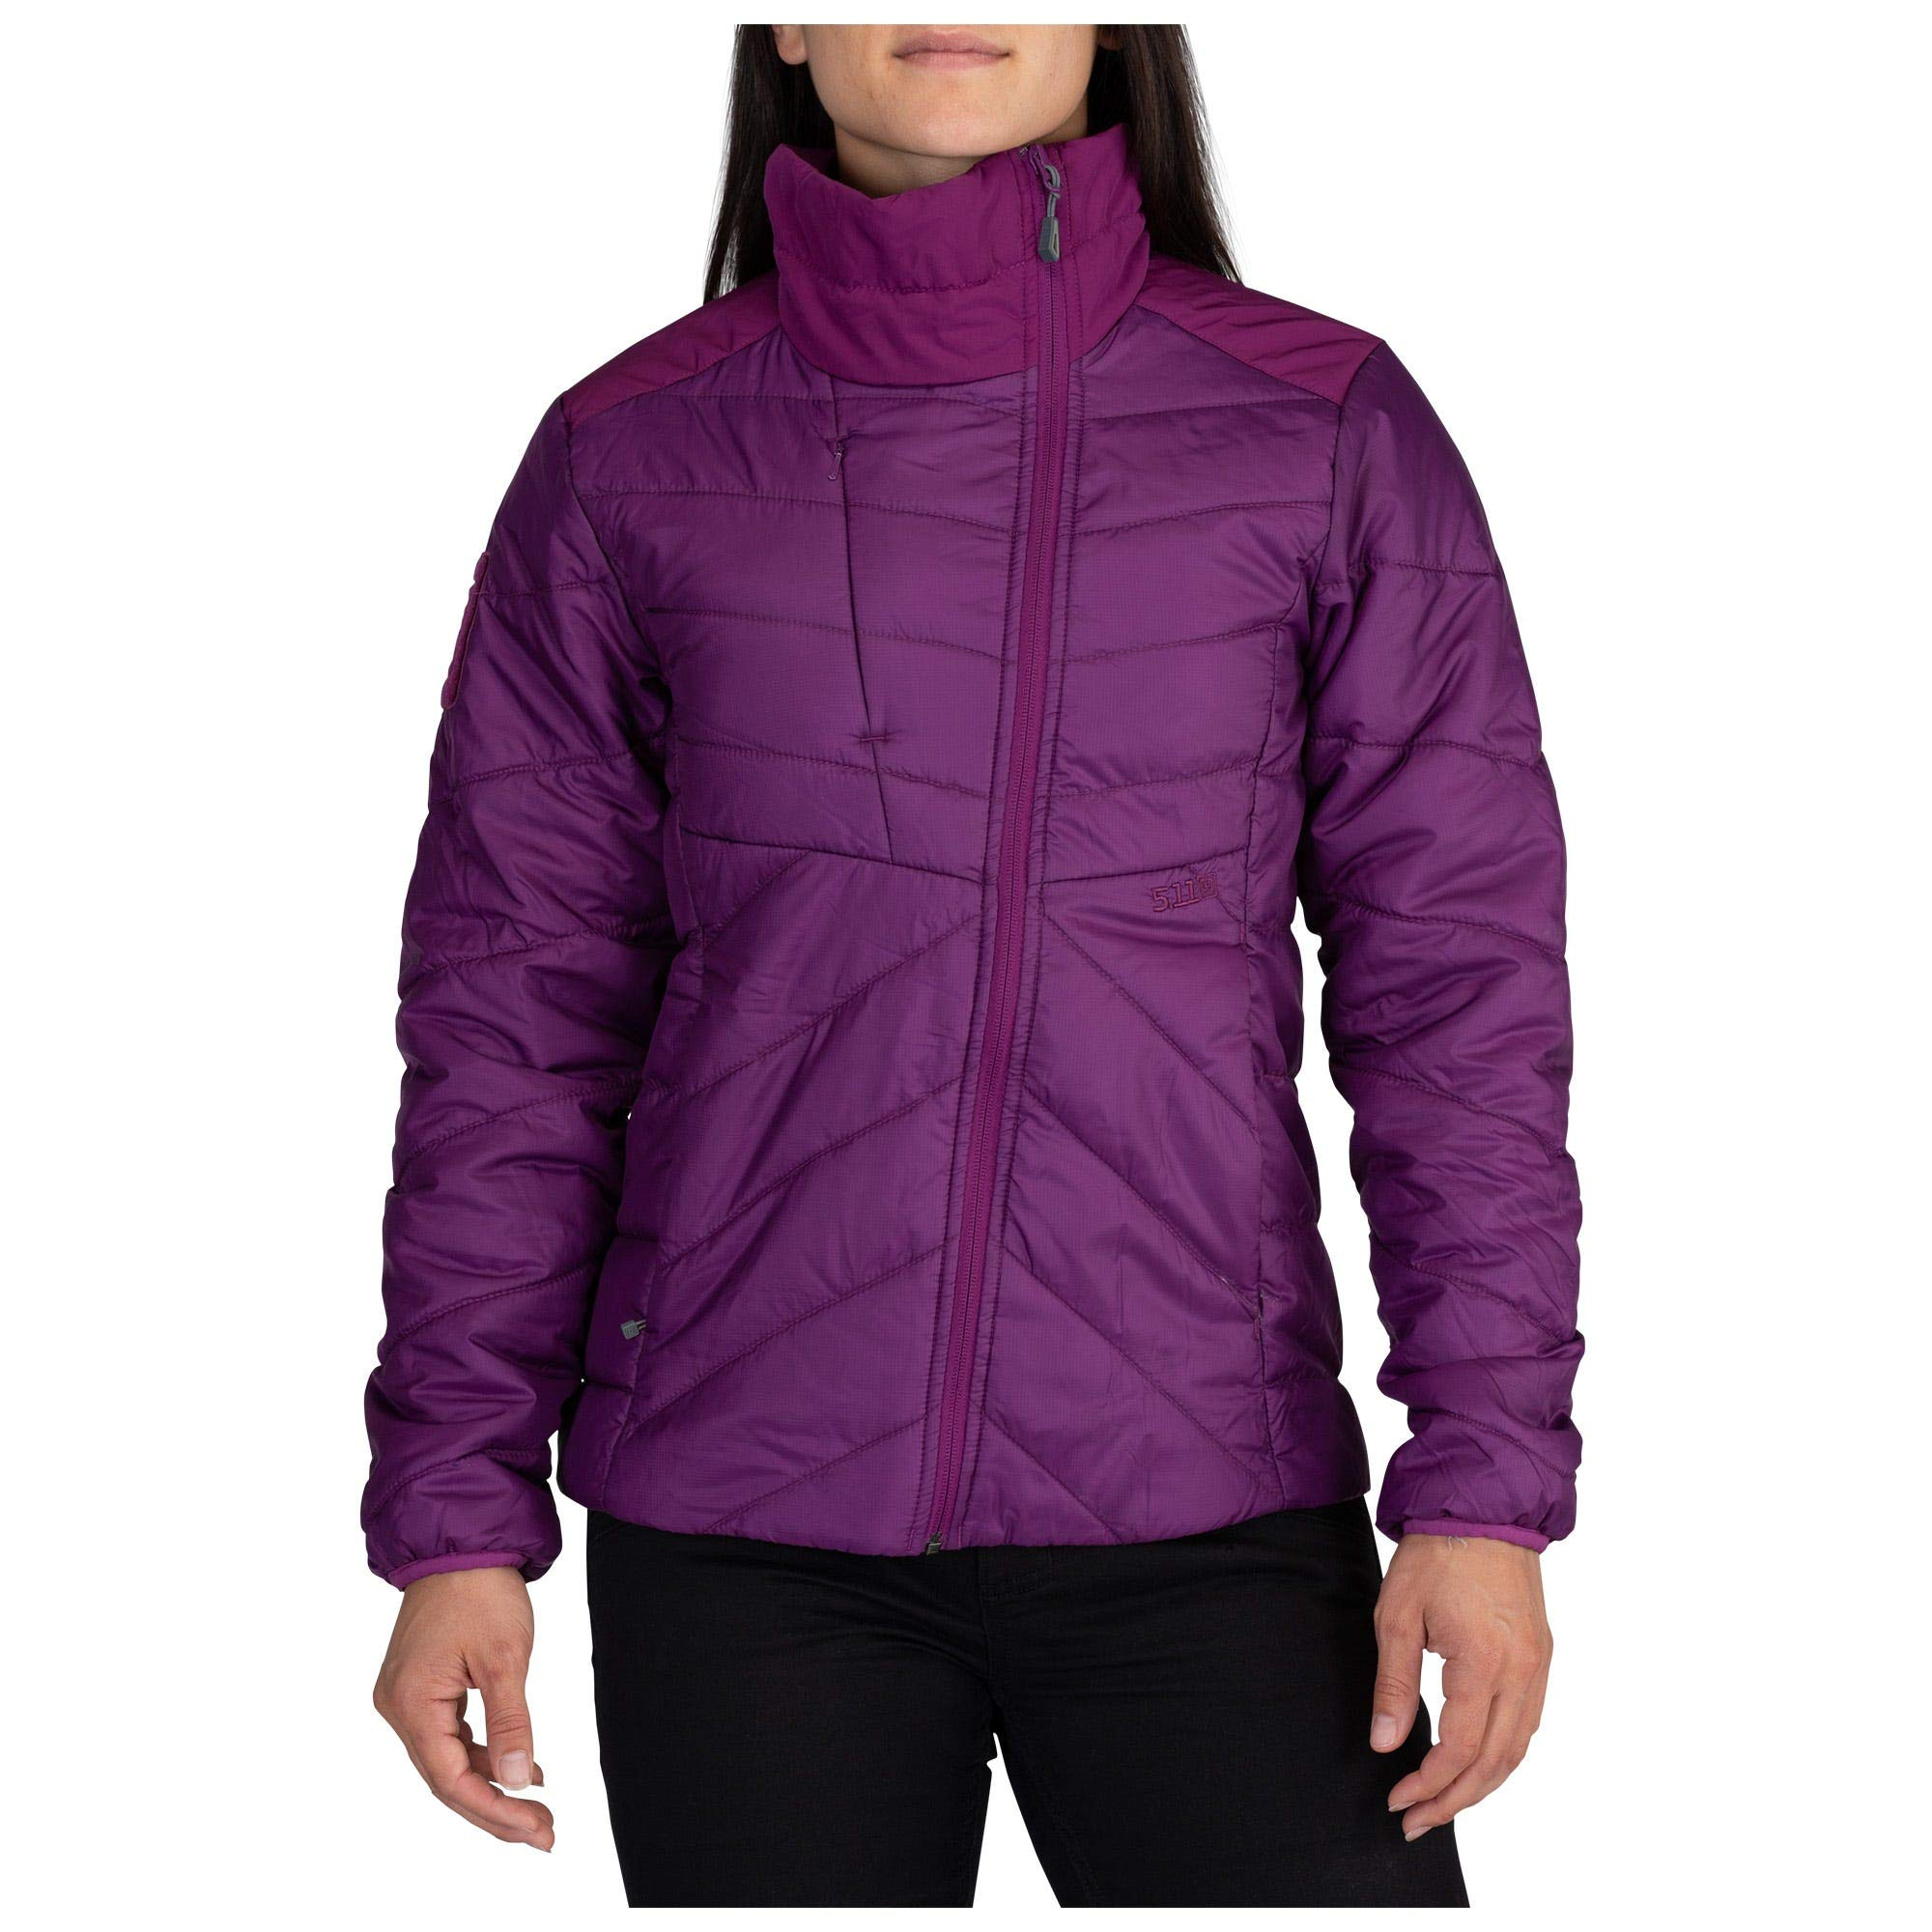 5.11 Tactical Women's Peninsula Insulator Packable Jacket, Mulberry, XS, 38076 by 5.11